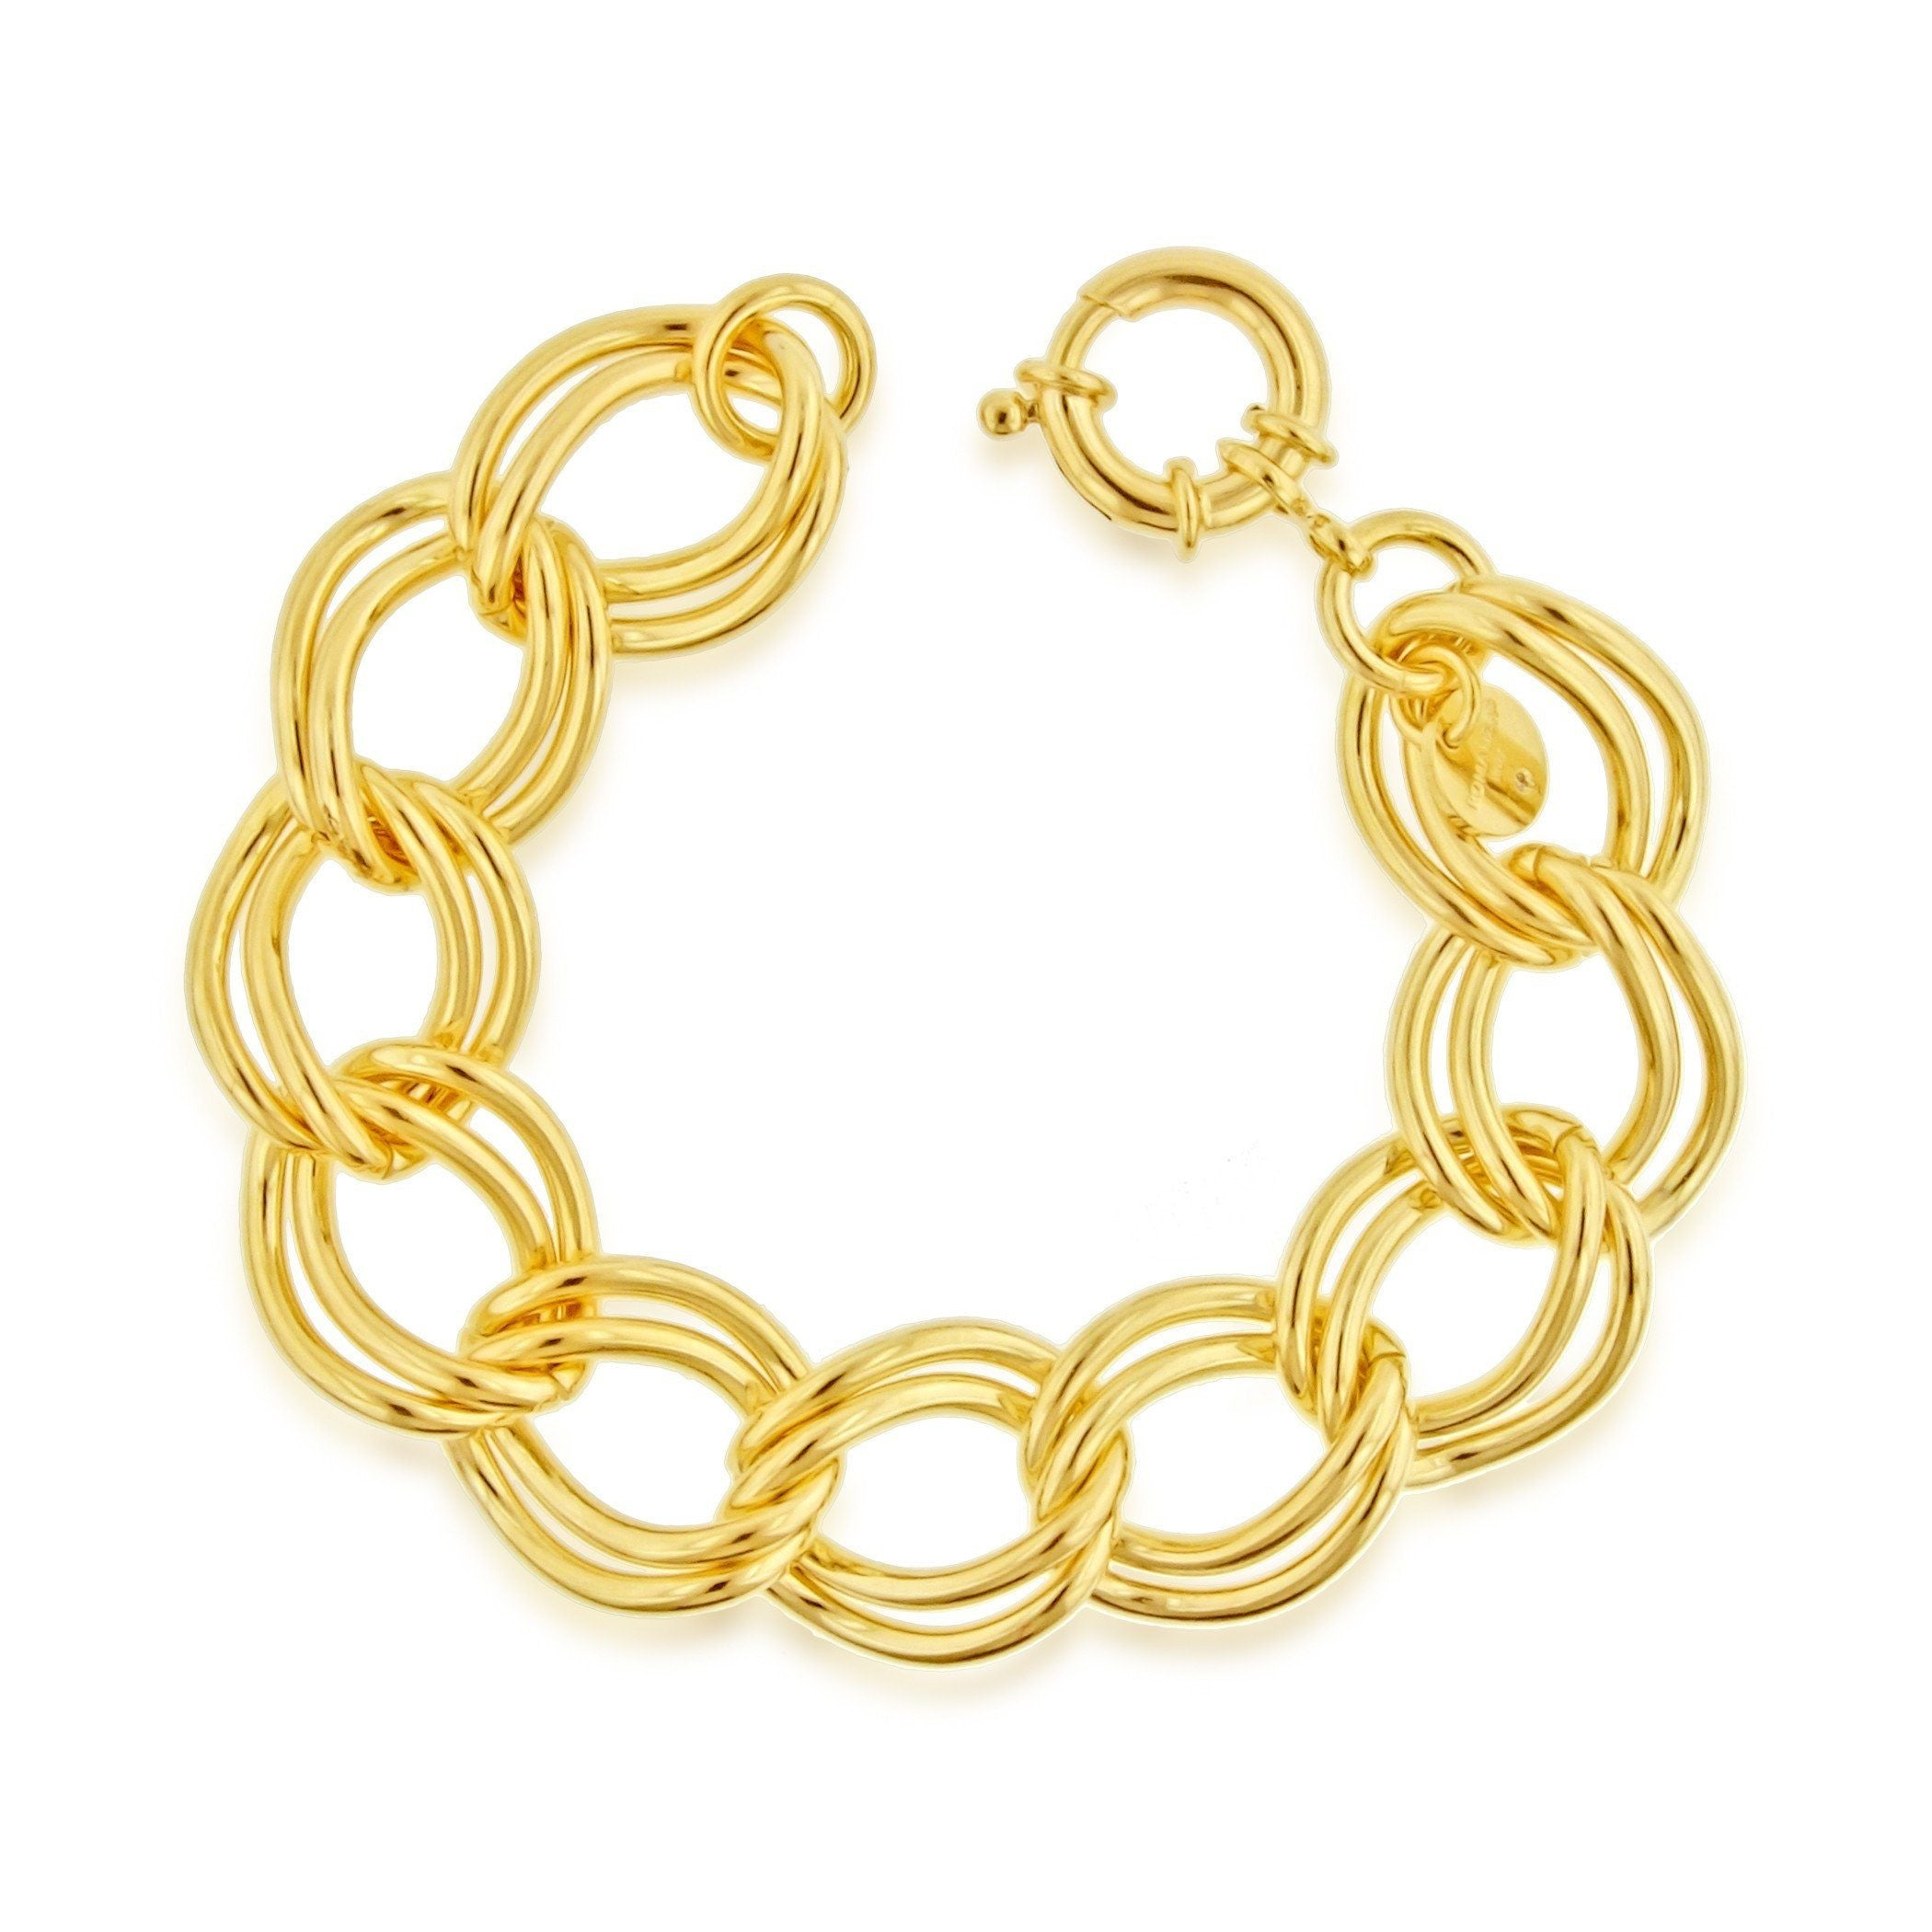 Grazie Italiana Collection: Gold-Plated Bronze Linear Garibaldi Double Link Bracelet - 8""